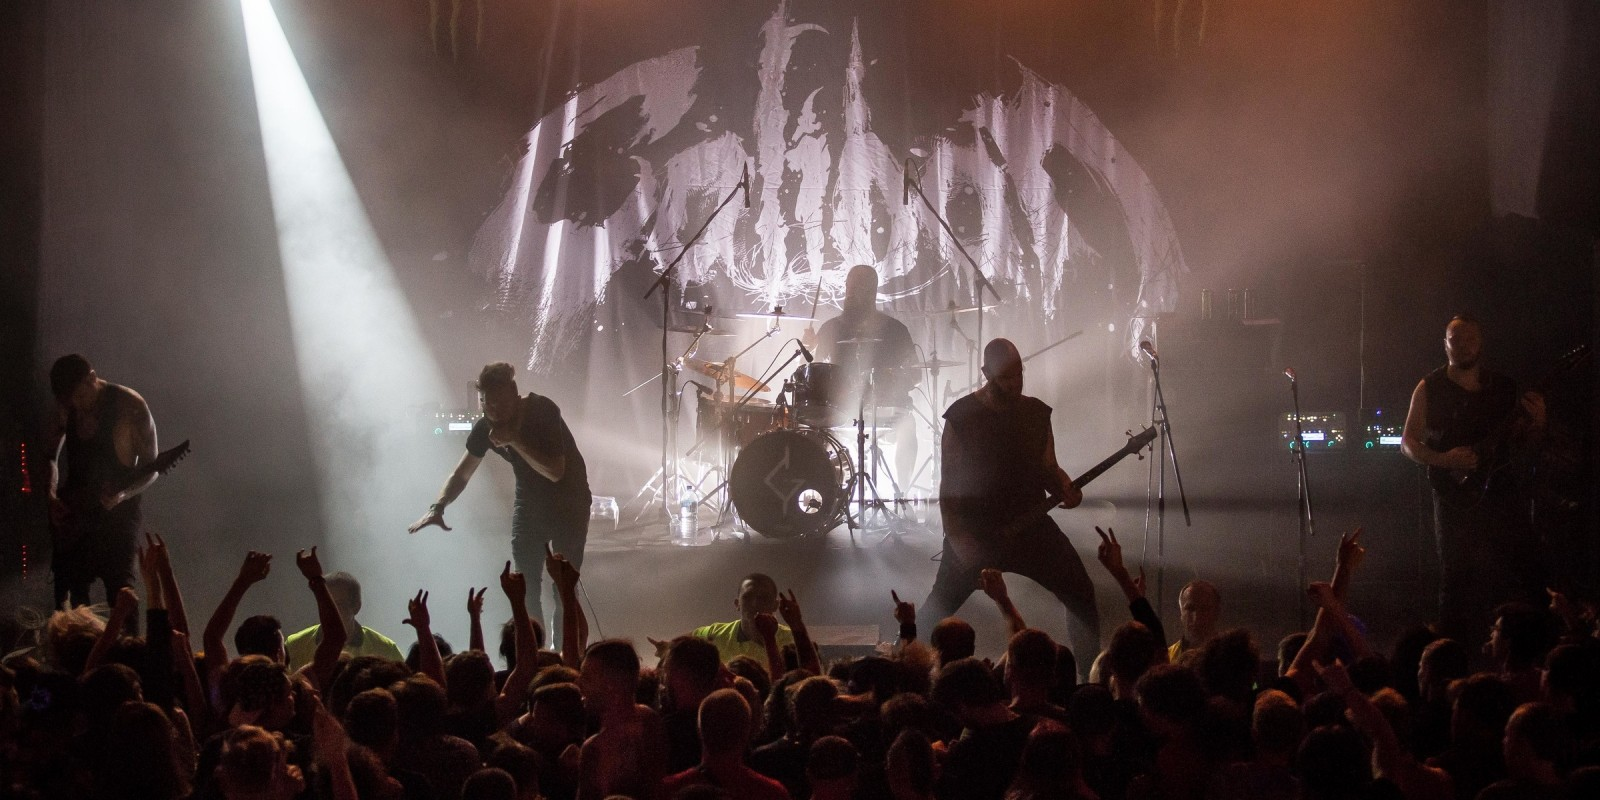 Images from Caliban gig in St Petersburg